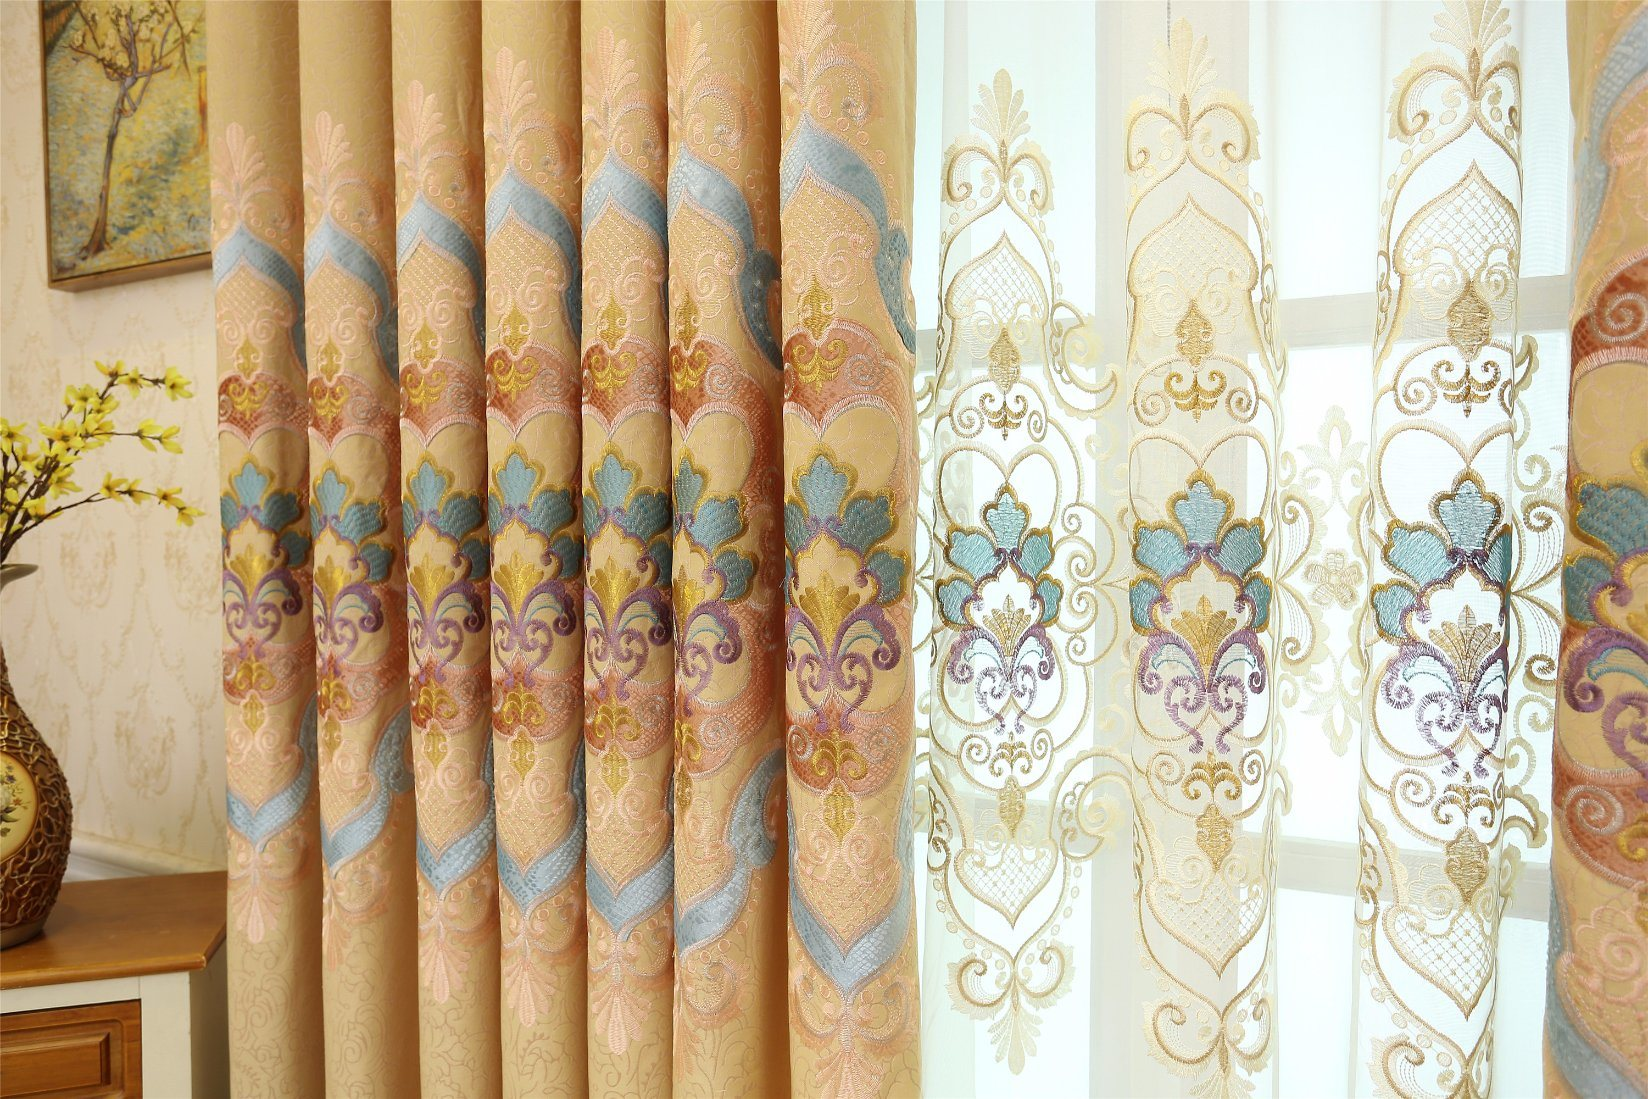 Gold Metallic&Applique Embroidery Curtain (MXC-03)